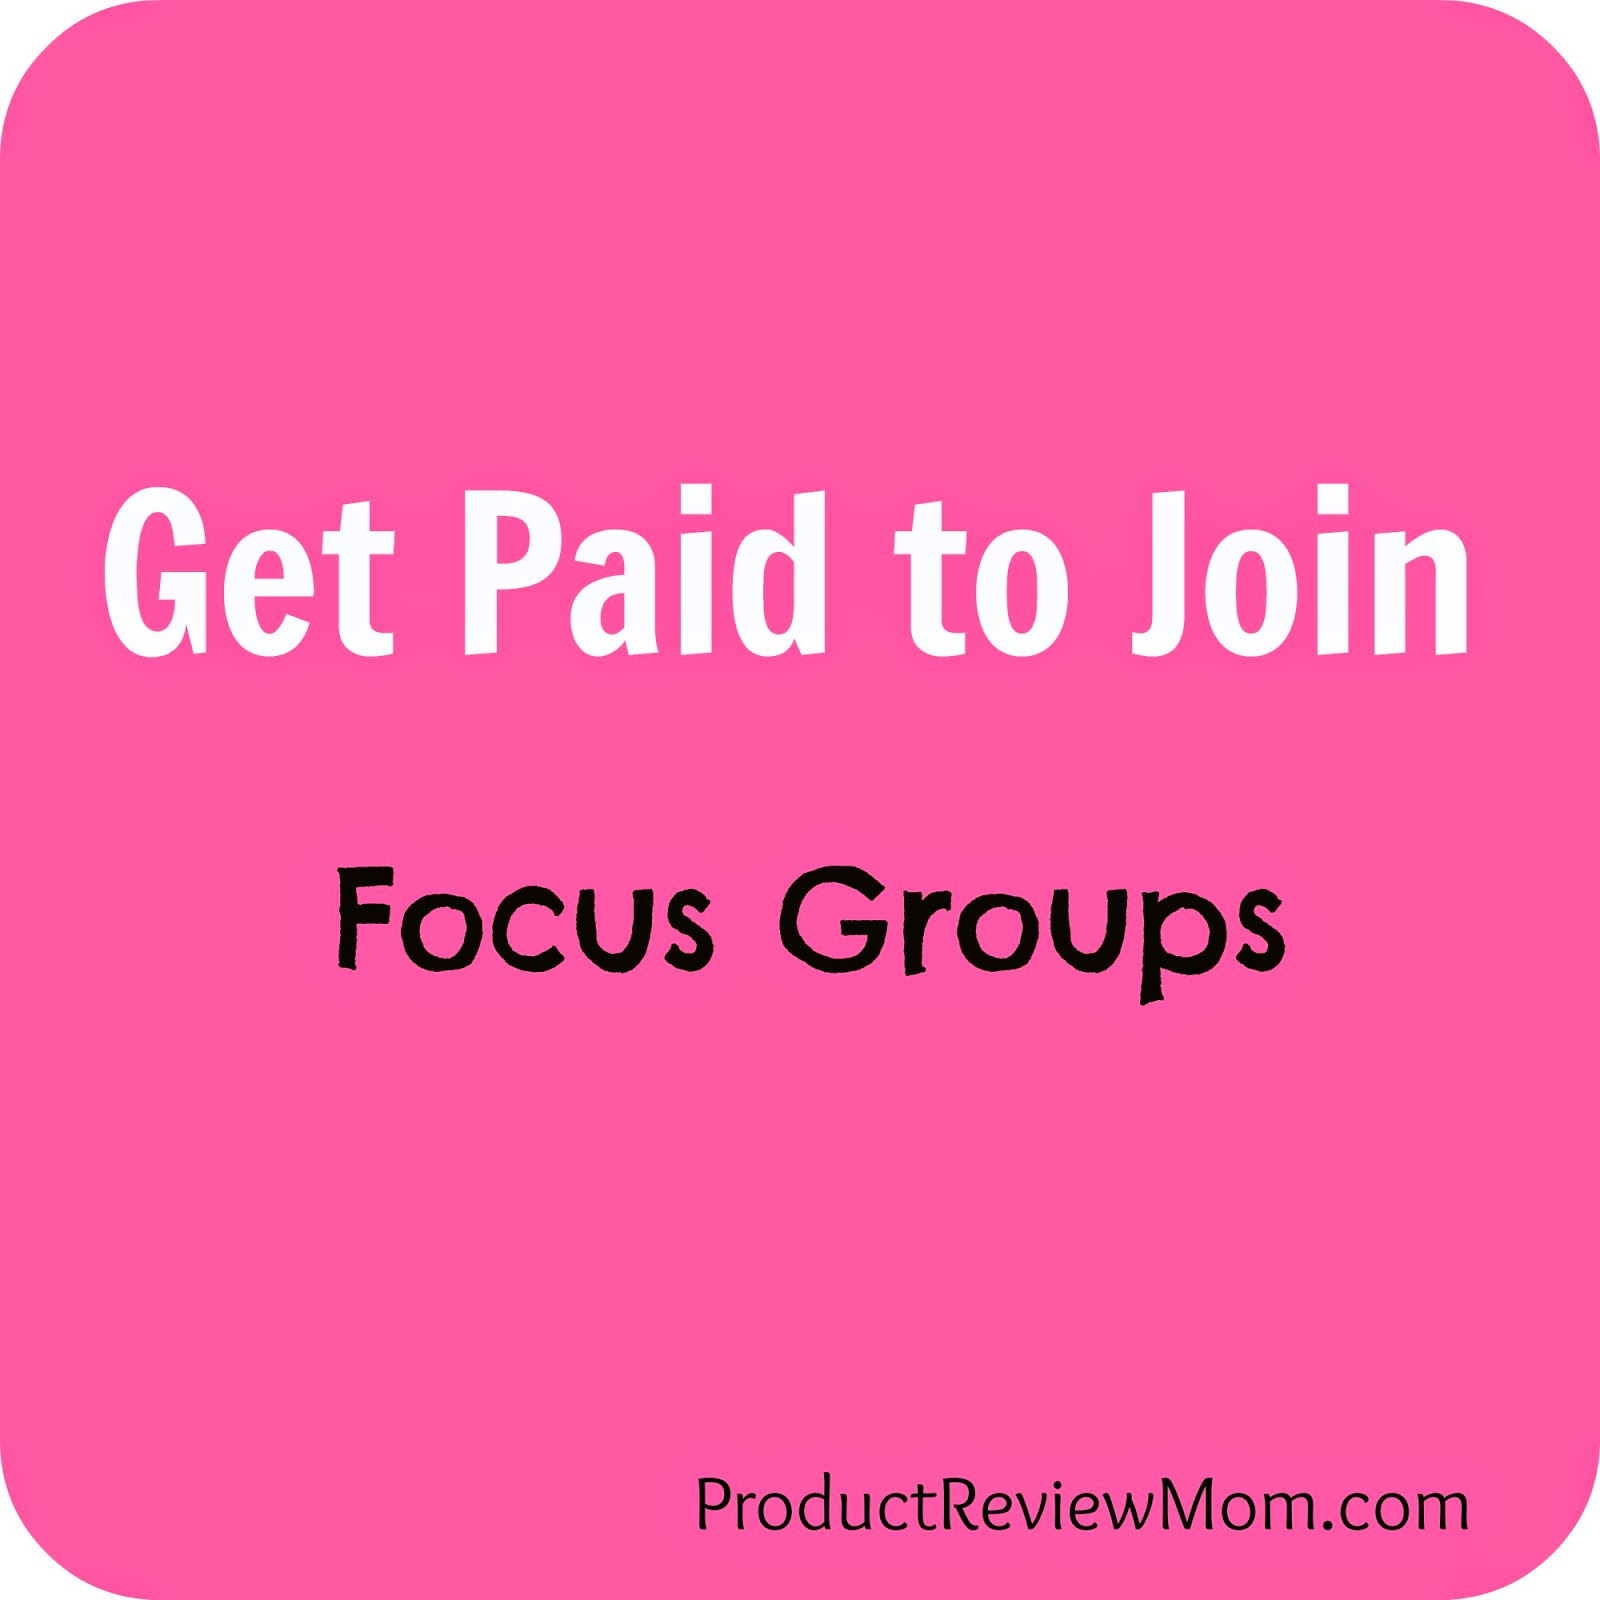 Get Paid To Join Focus Groups